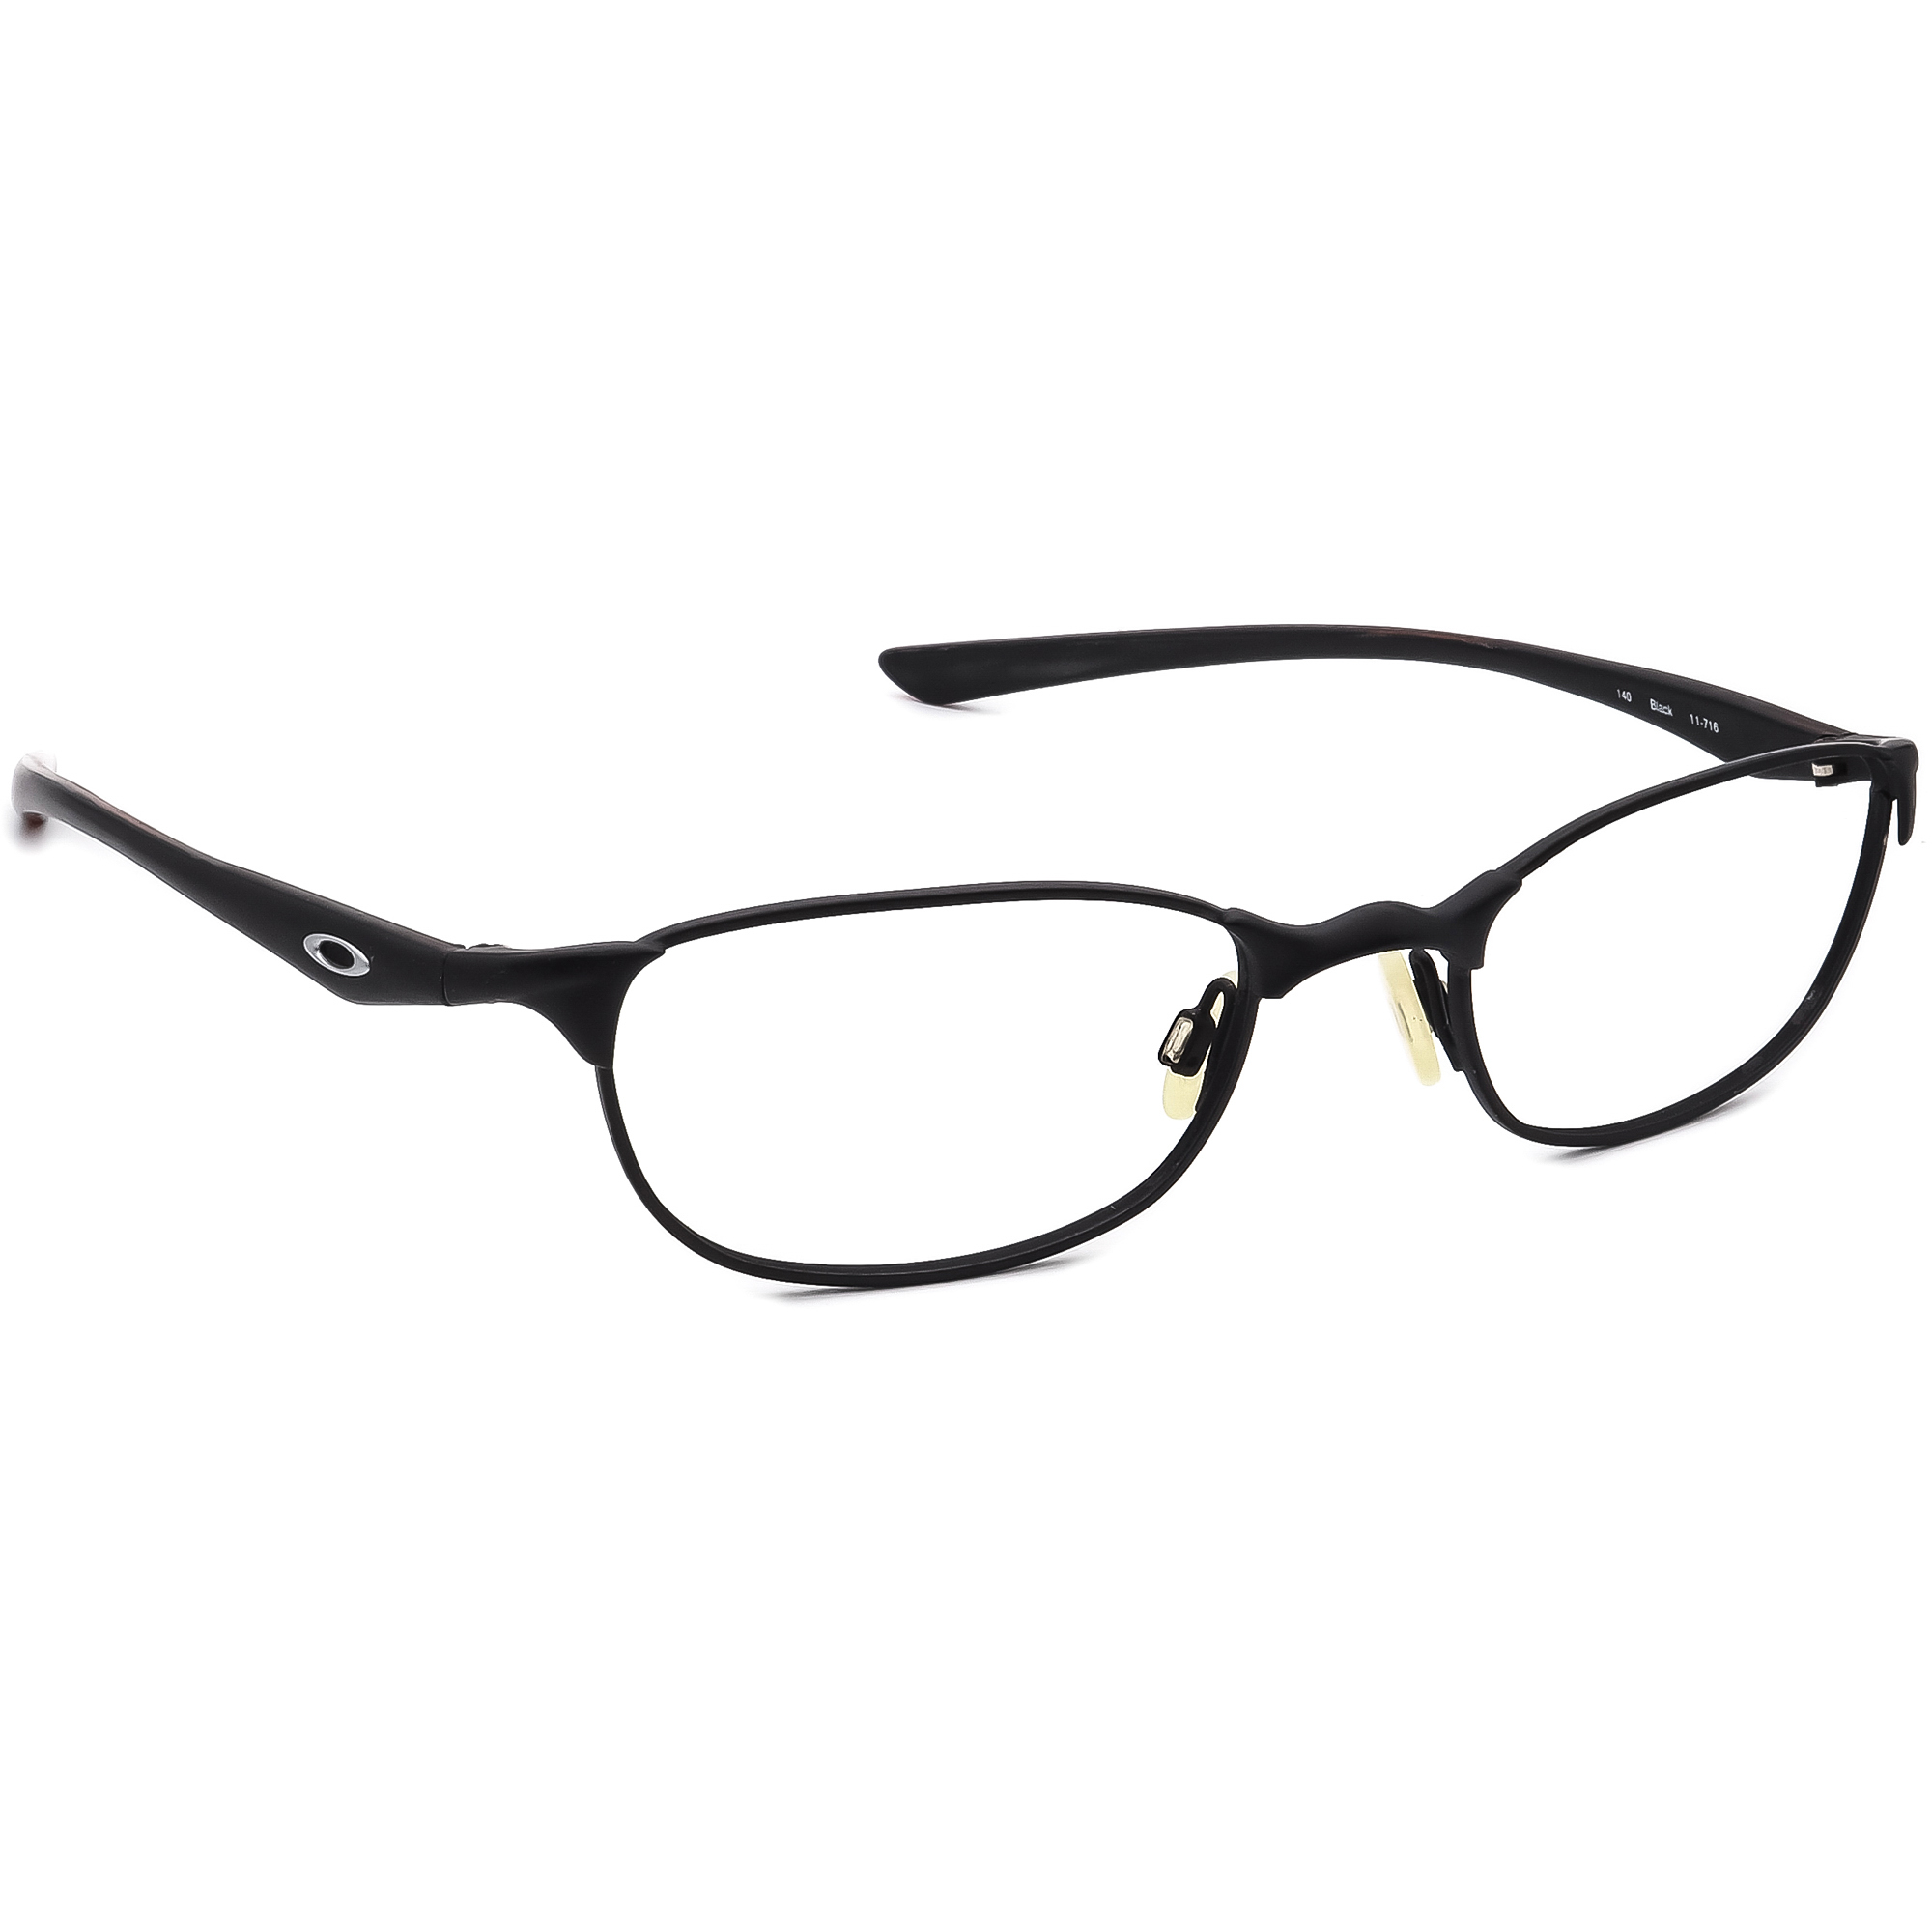 Oakley Off Line 6.0 11-716 Eyeglasses